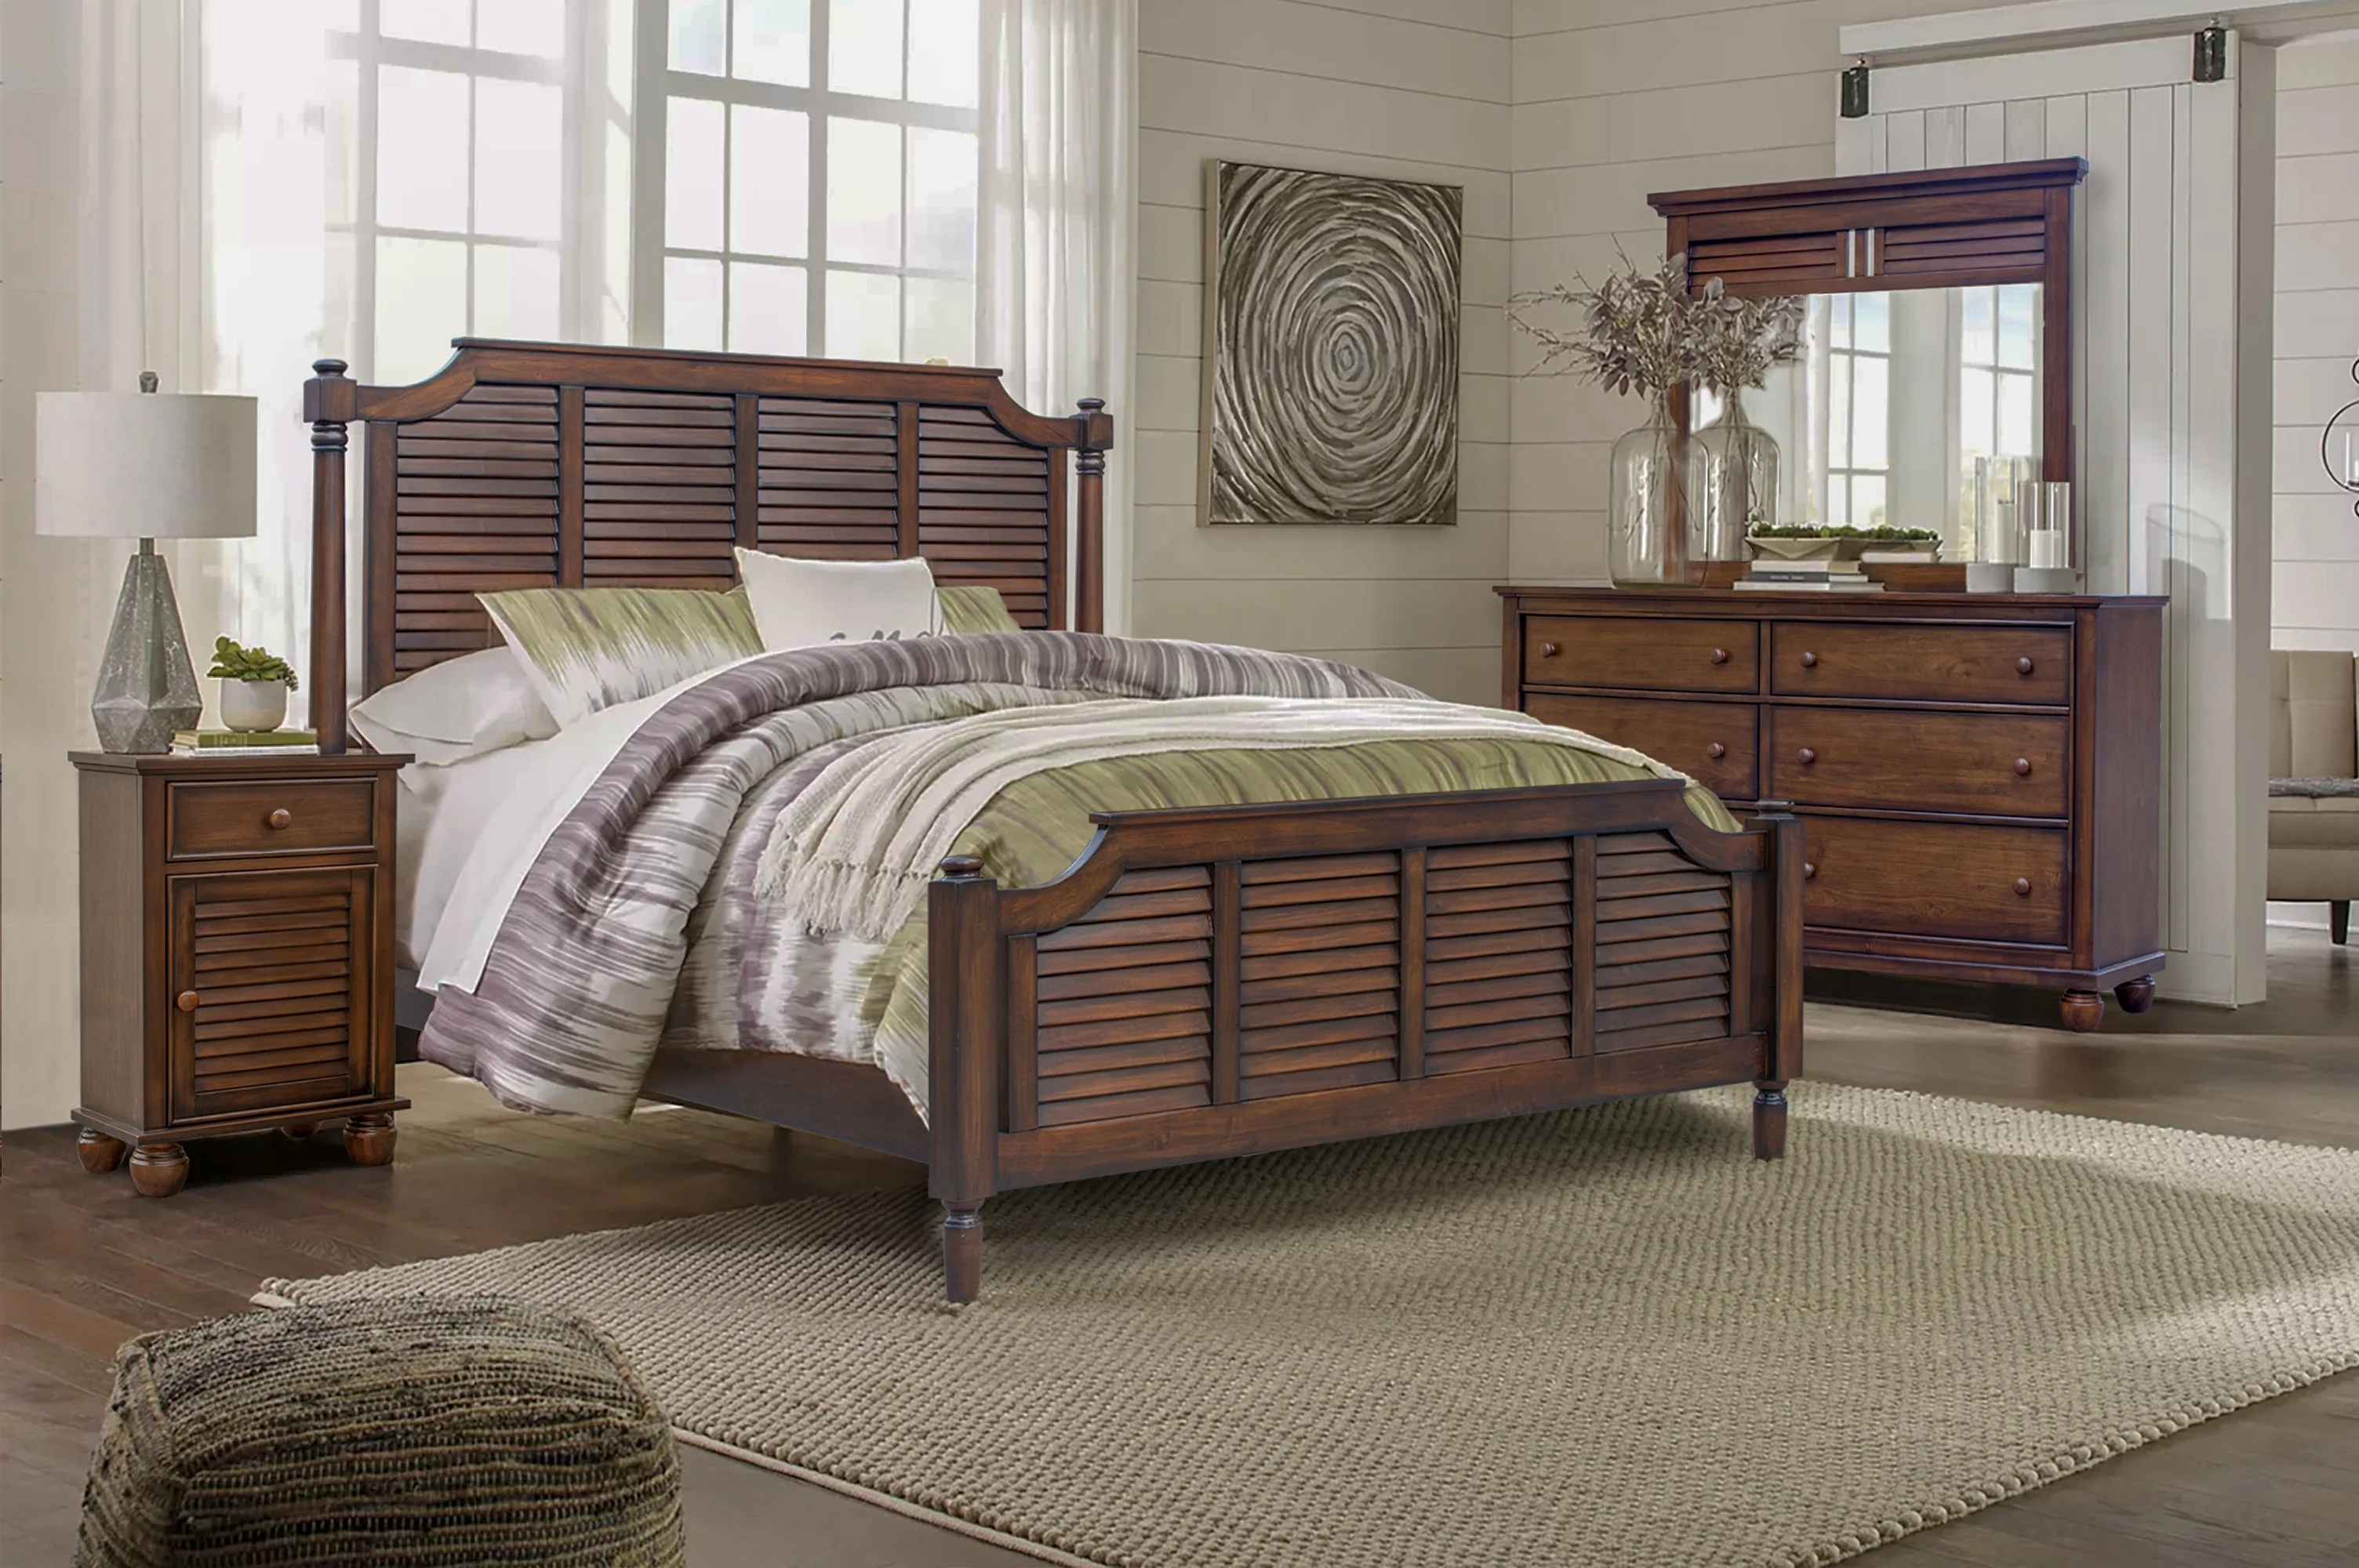 tropical bedroom sets you ll love in